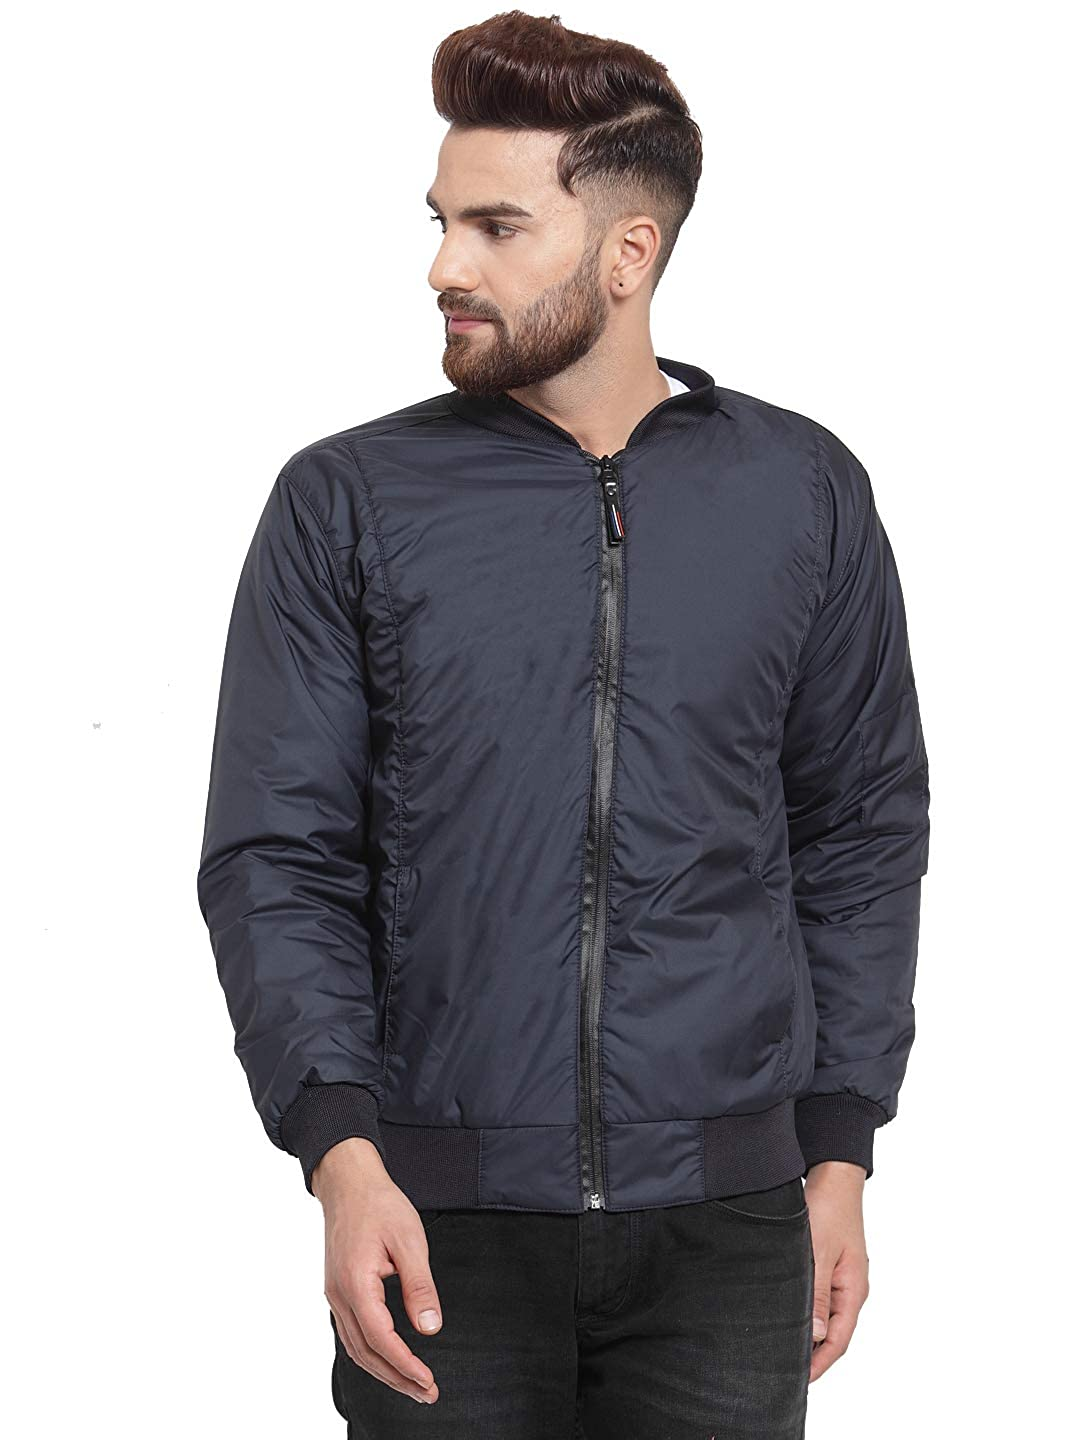 Ben Martin Men's Quilted Jacket